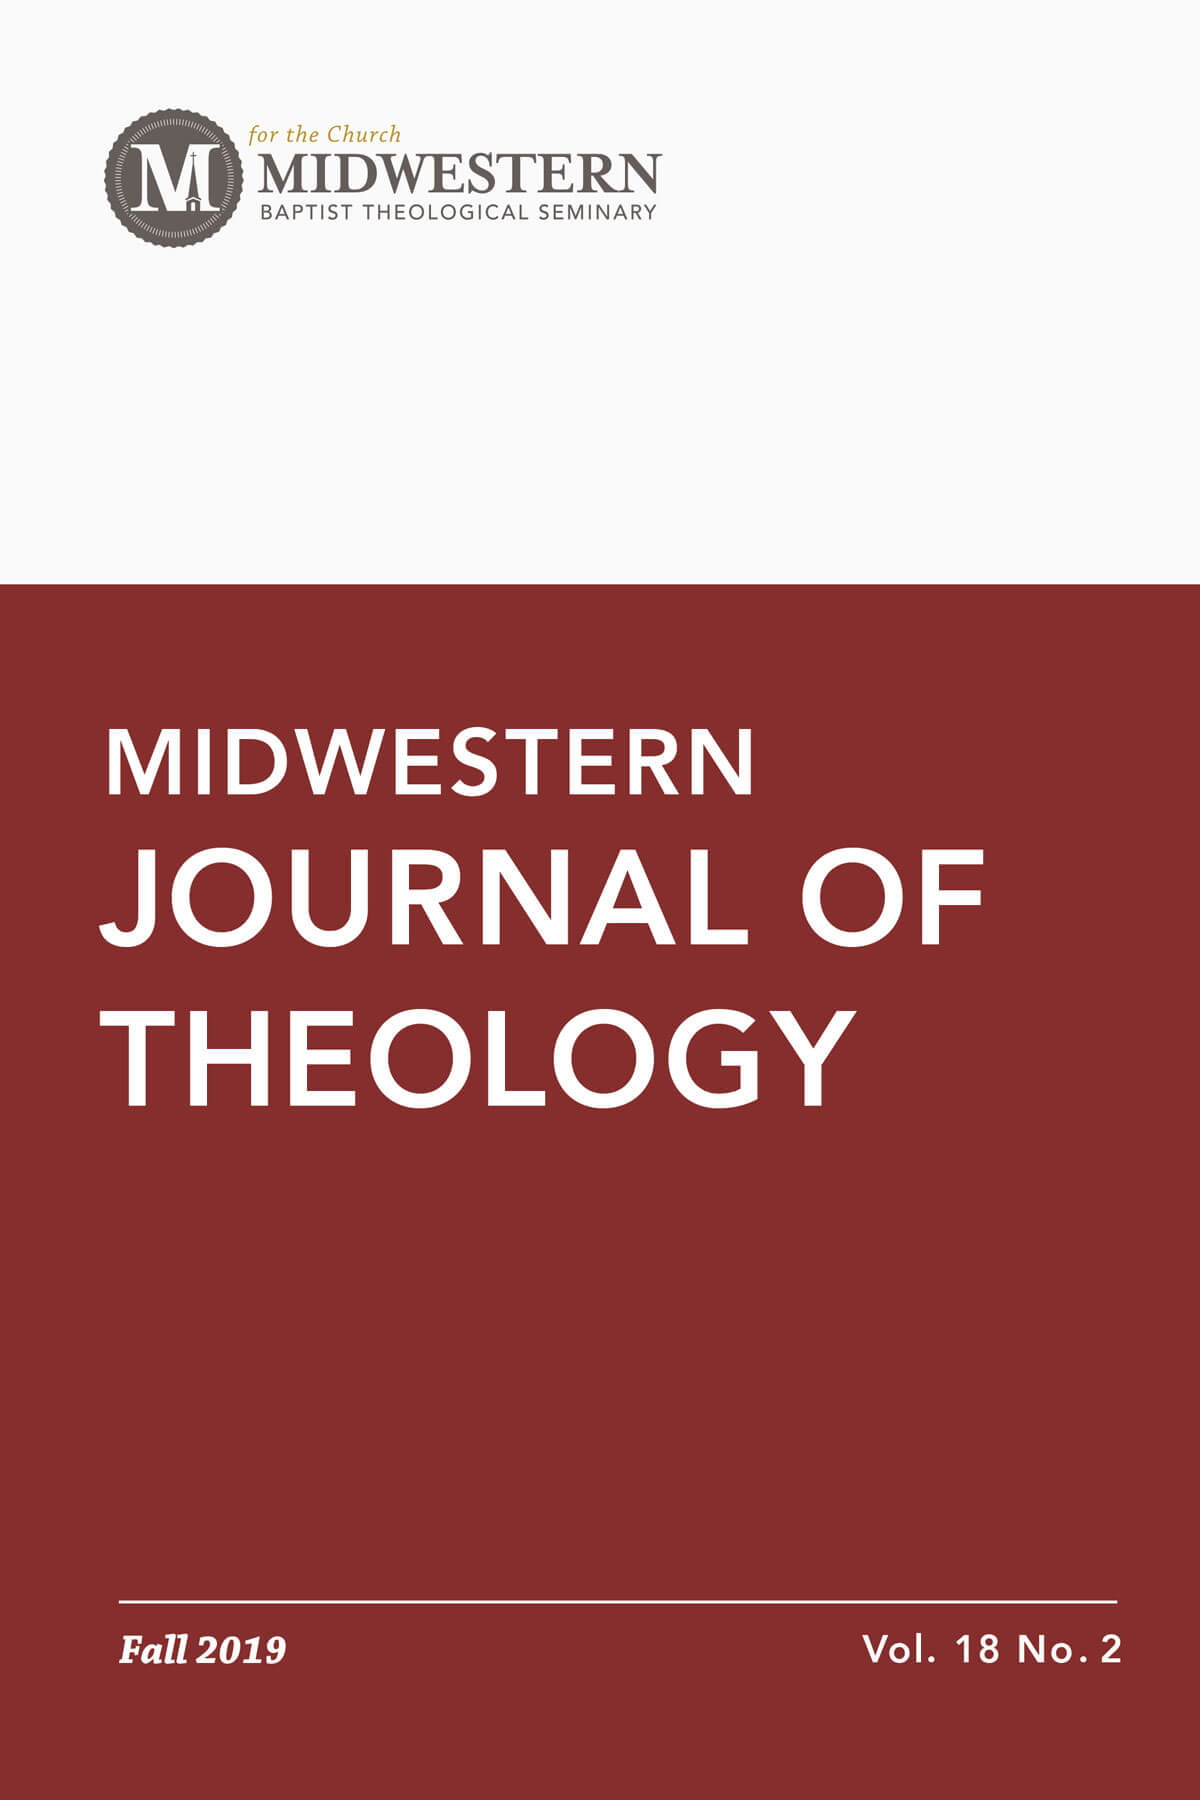 Fall 2019 Midwestern Journal of Theology